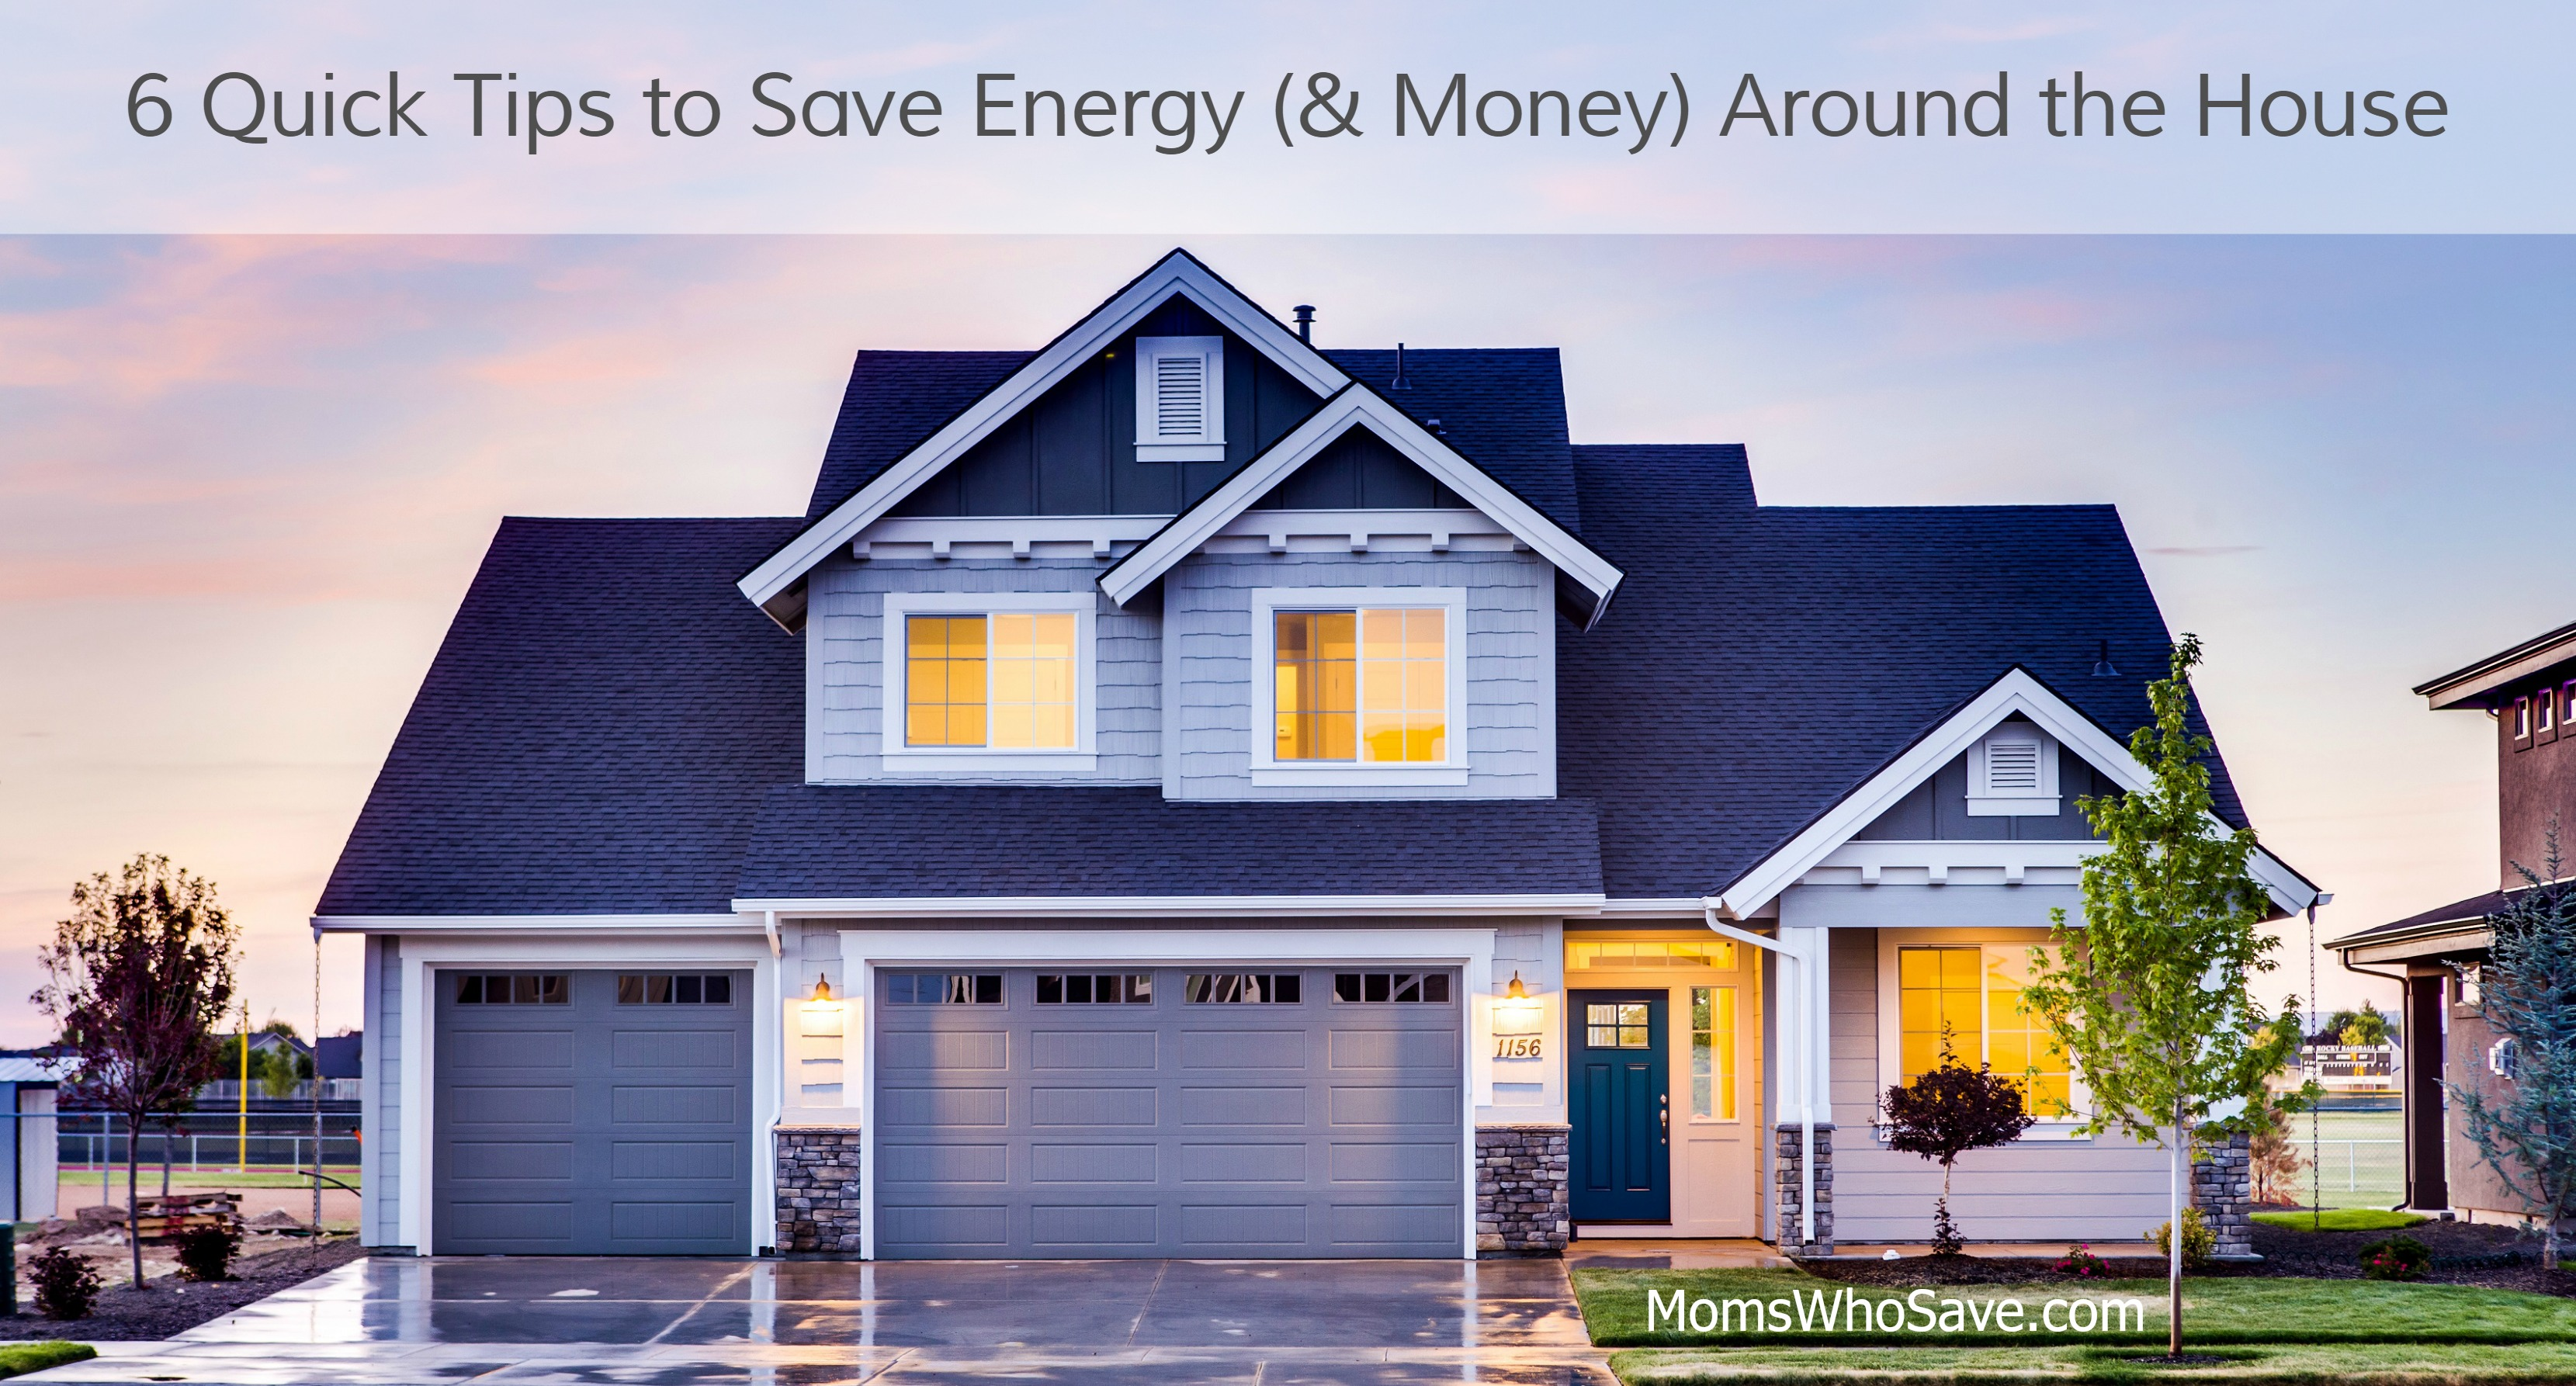 6 Quick Tips to Save Energy (& Money) Around the House